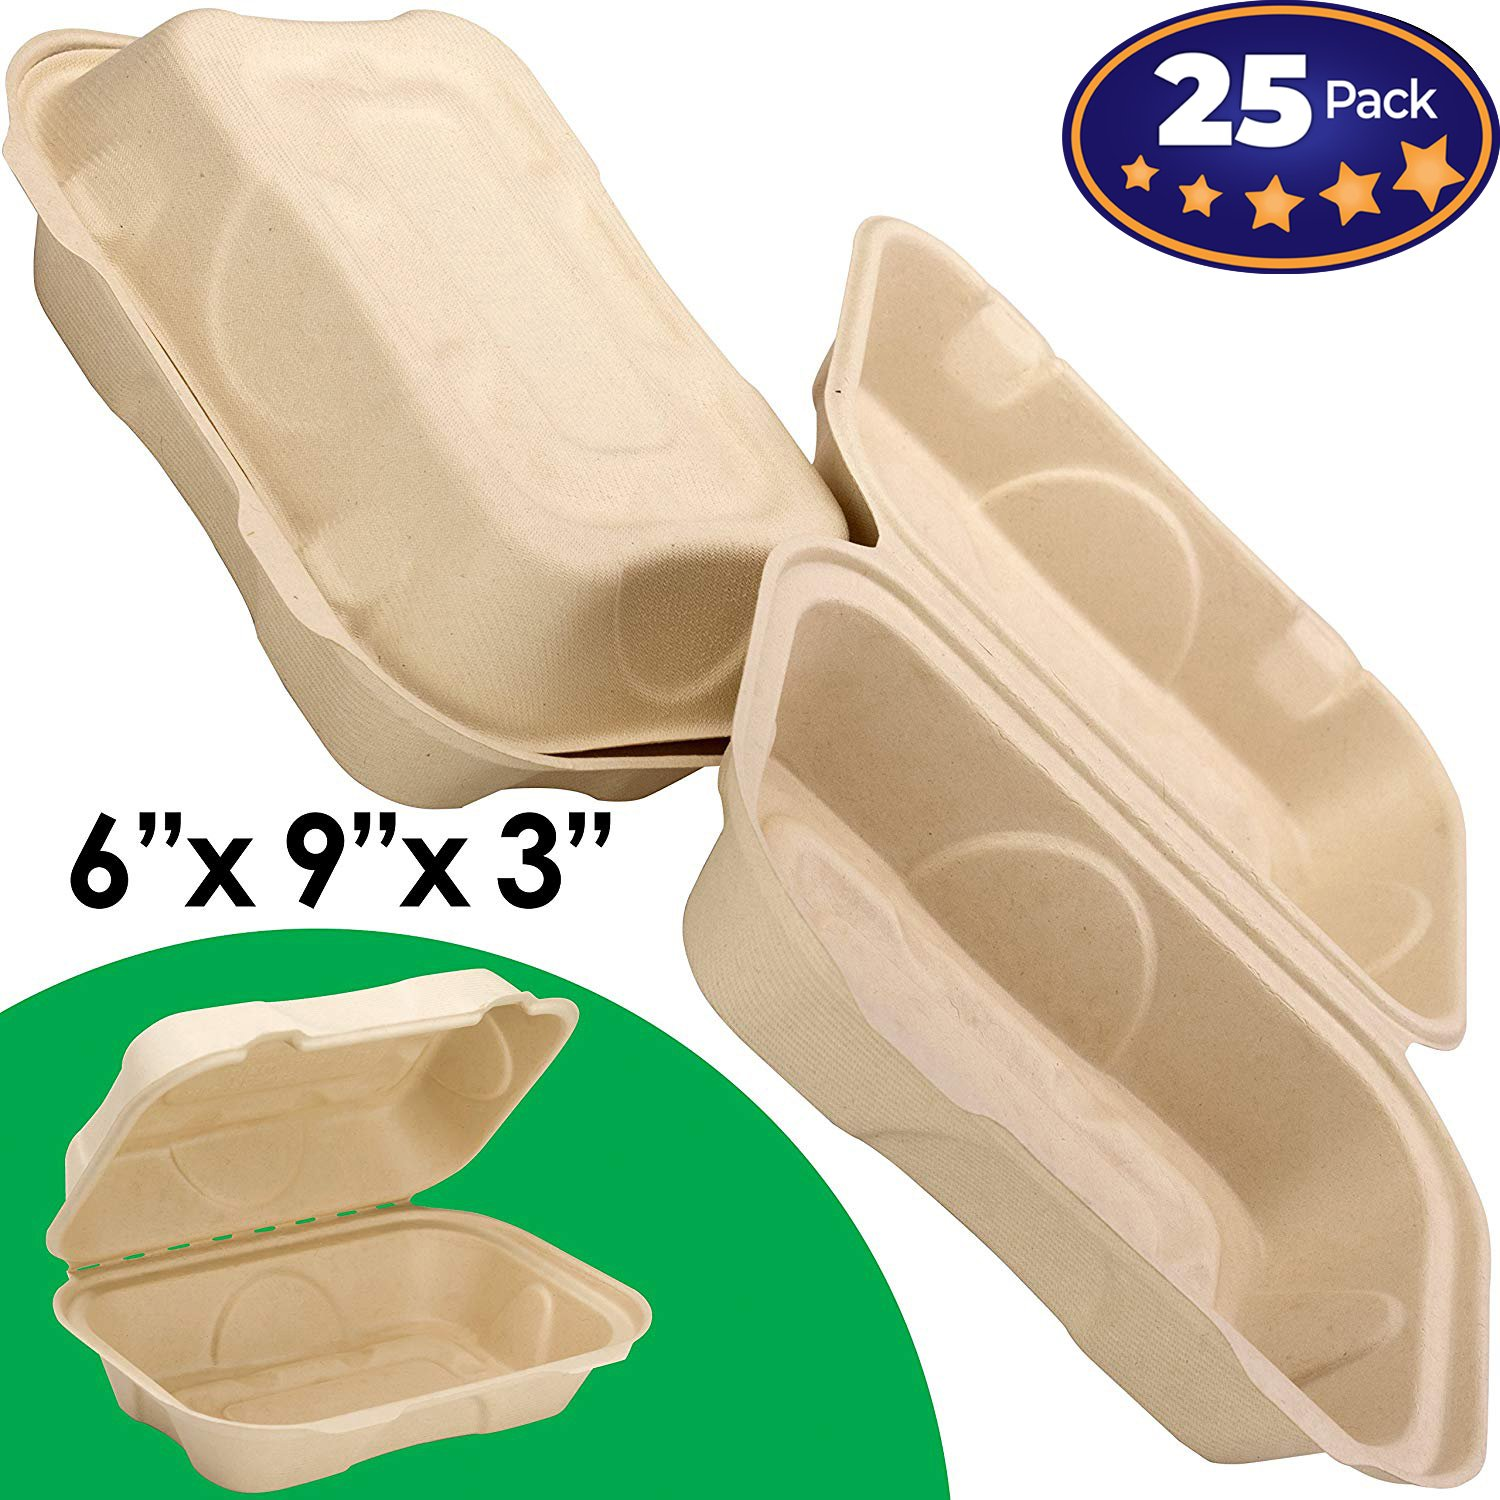 Biodegradable 6x9 Take Out Food Containers with Clamshell Hinged Lid 25 Pack. Microwaveable, Disposable Takeout Box to Carry Meals ToGo. Great for Restaurant Carryout or Party Take Home Boxes